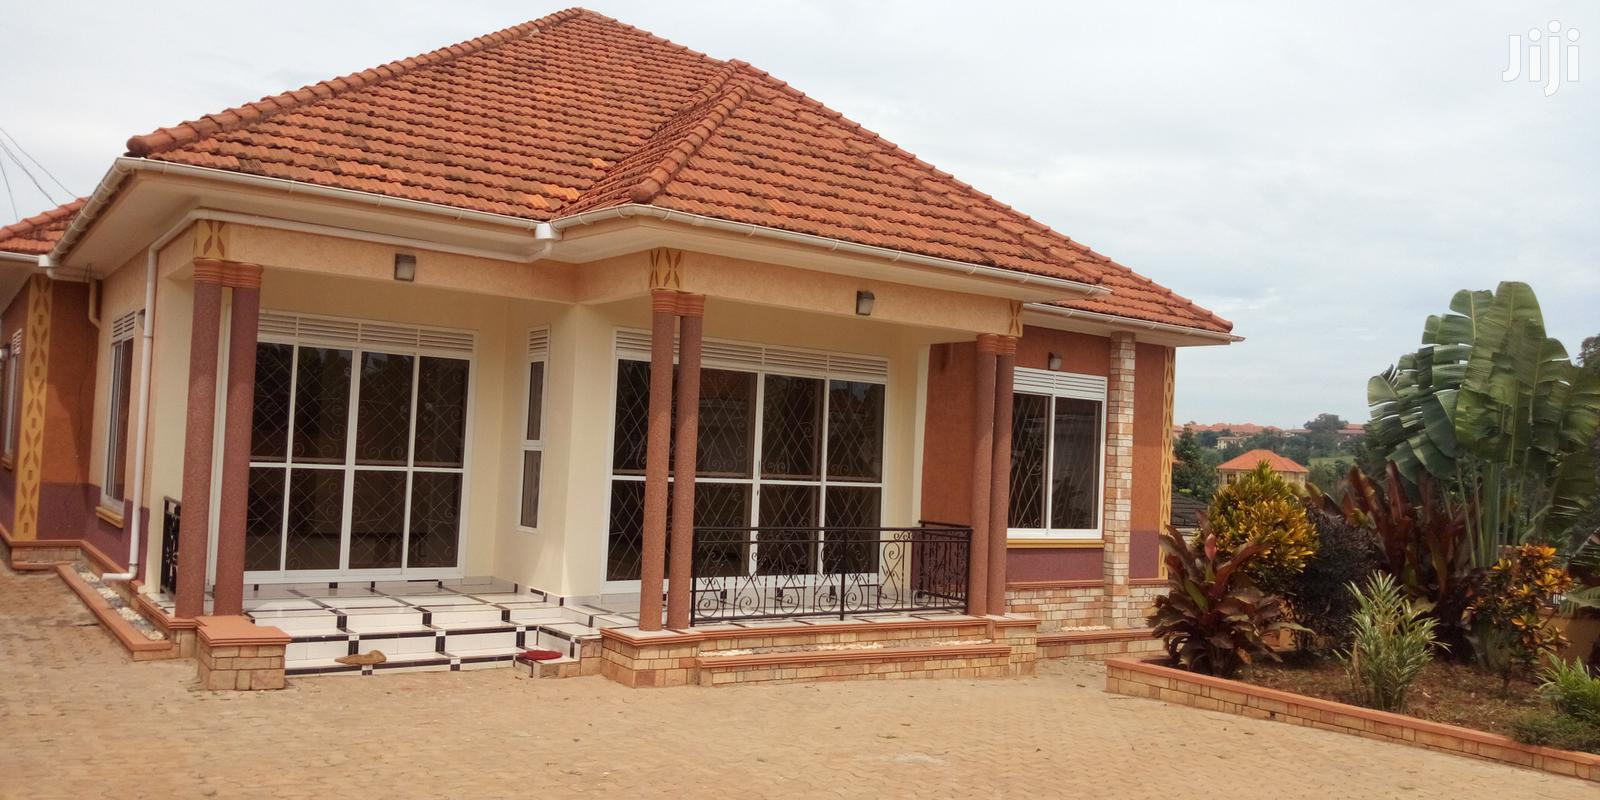 4 Bedrooms Home House for Sale in Kira